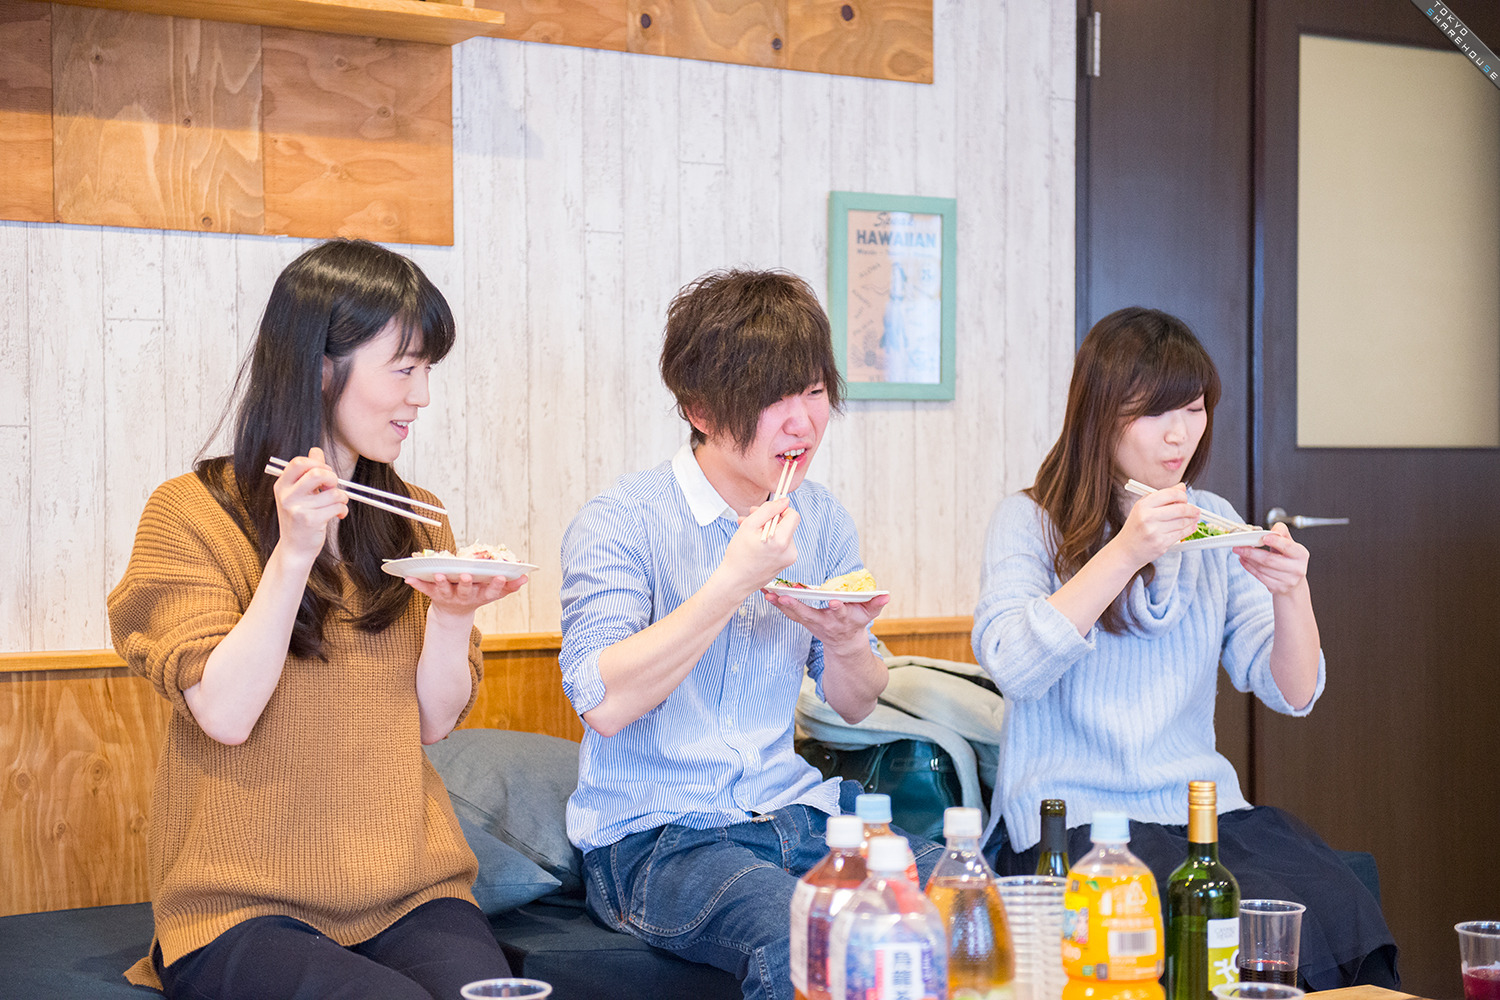 011nishifunabashi(people-who-are-eating)